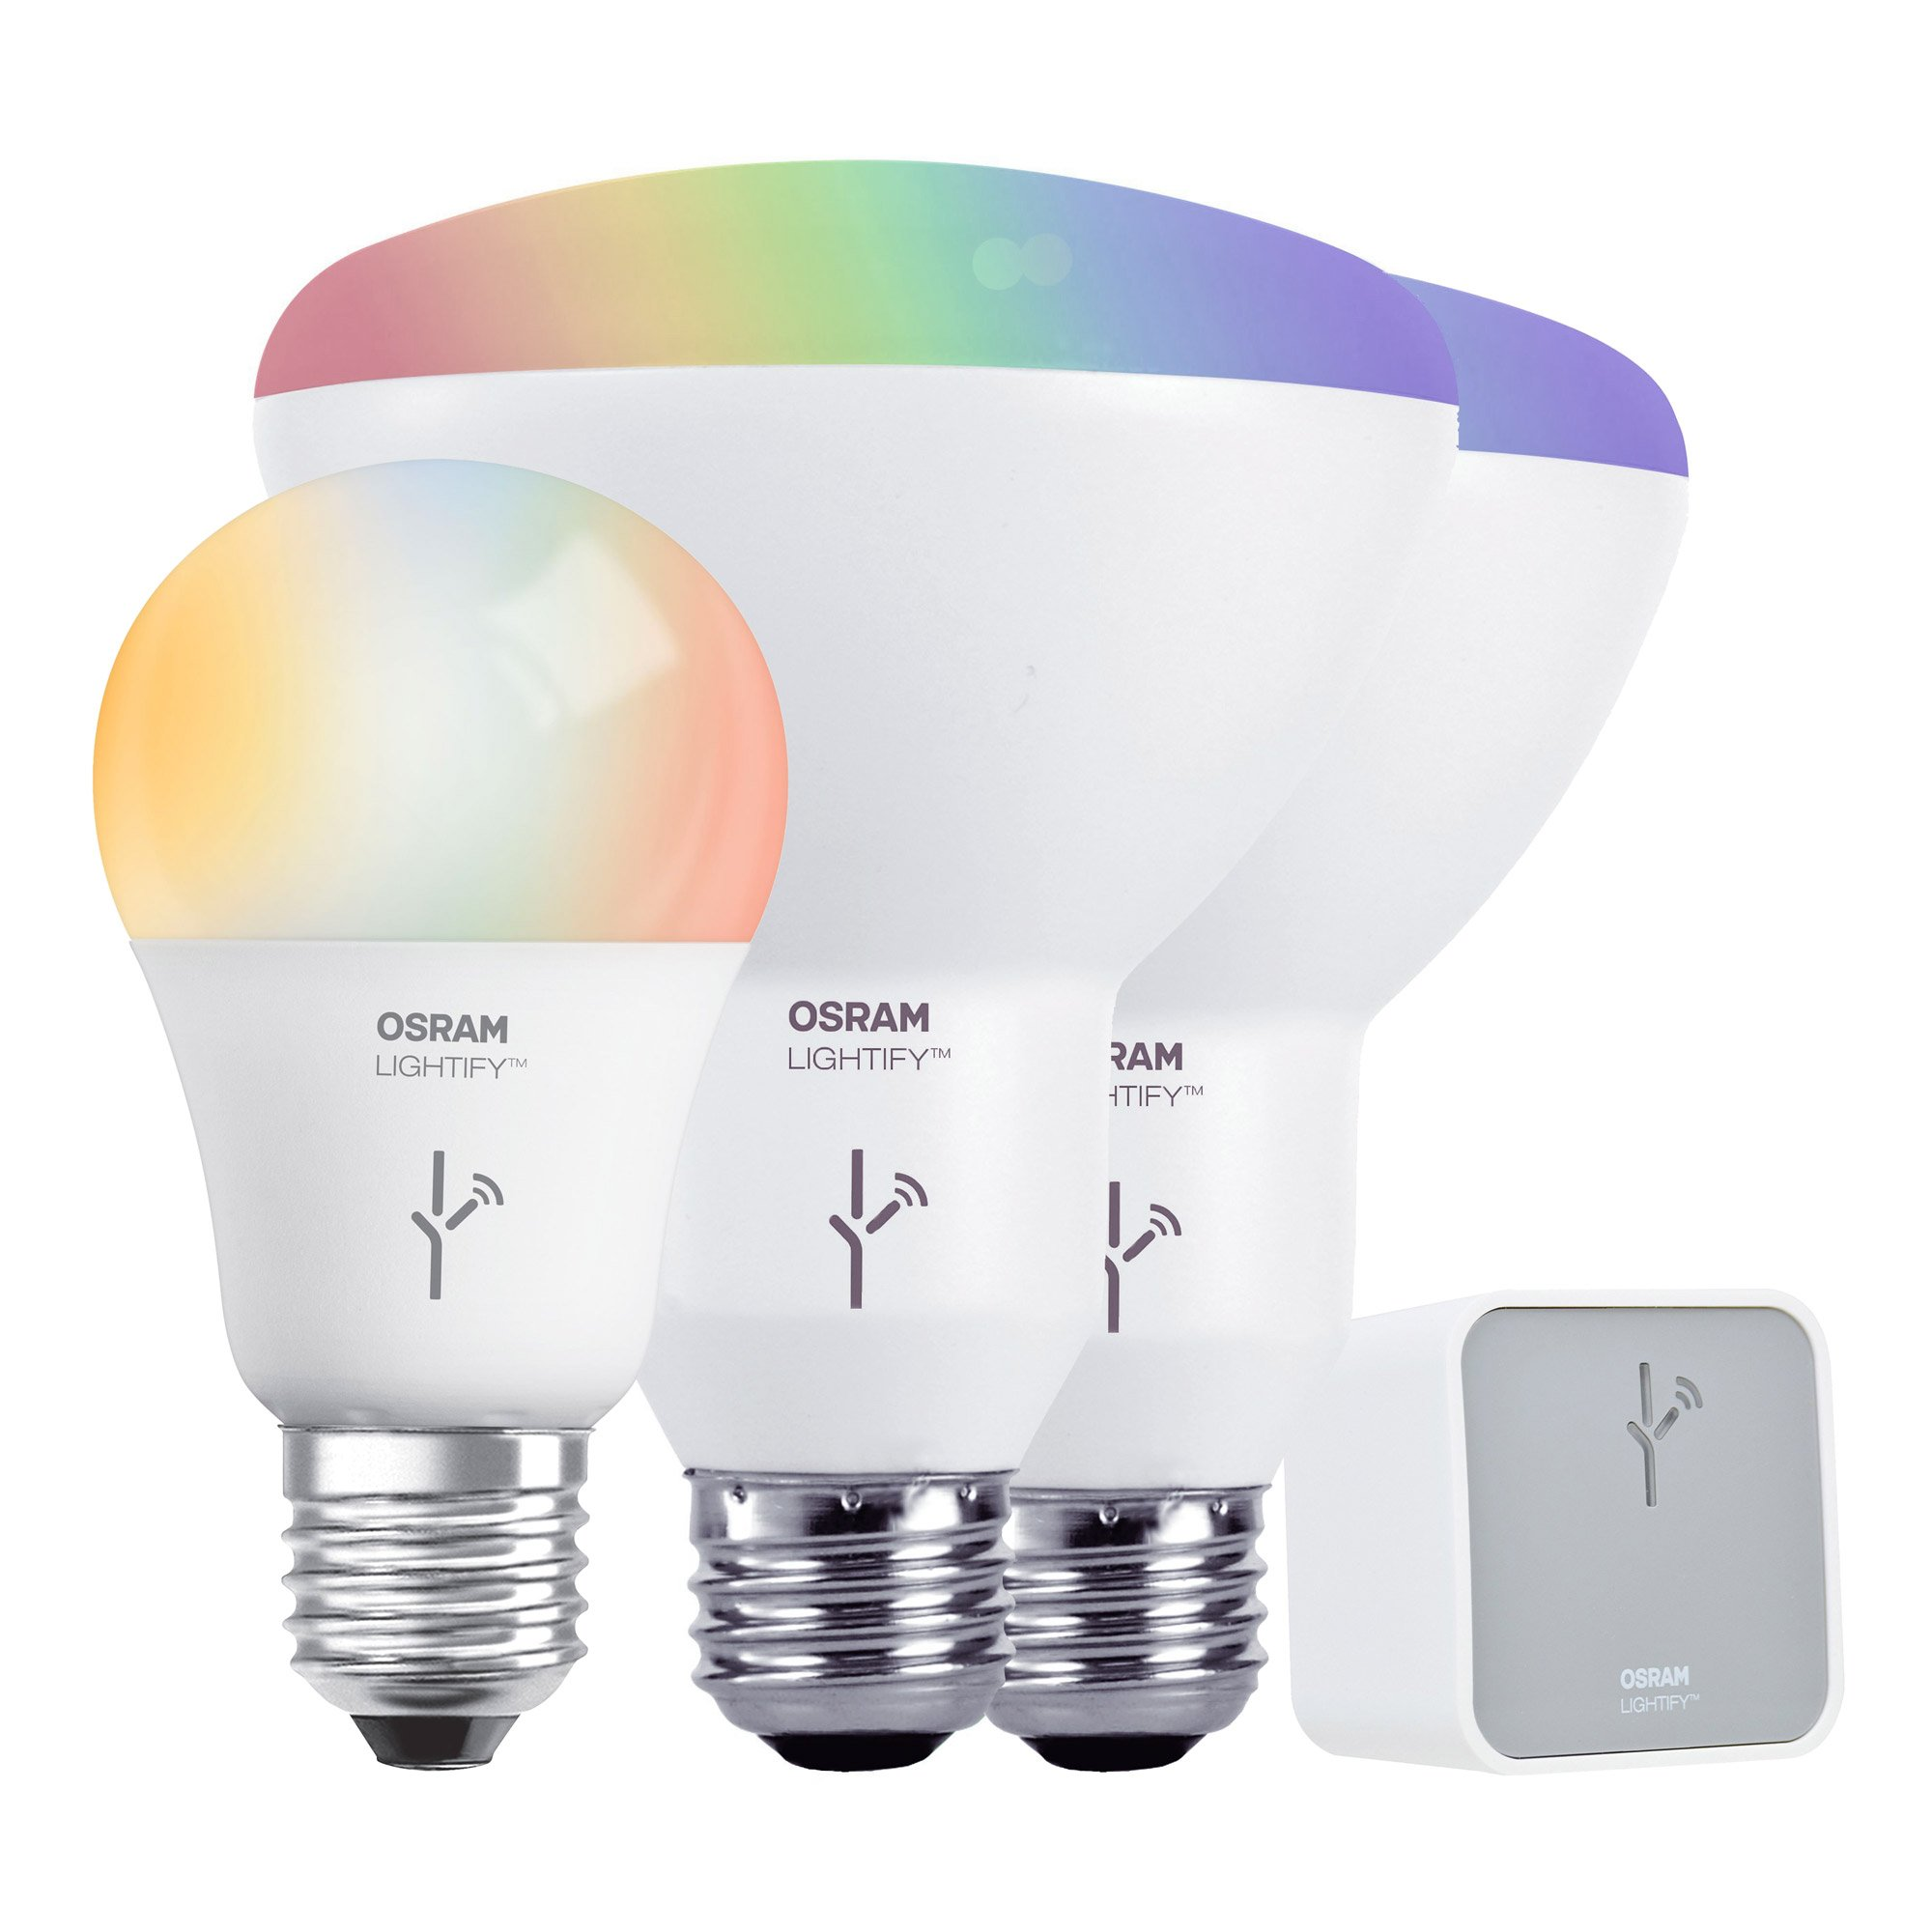 SYLVANIA LIGHTIFY by Osram - Smart Home LED Starter Kit - Includes: (1) A19 RGBW 60W, (2) BR30 RGBW 65W, (1) Gateway by Sylvania Smart Home